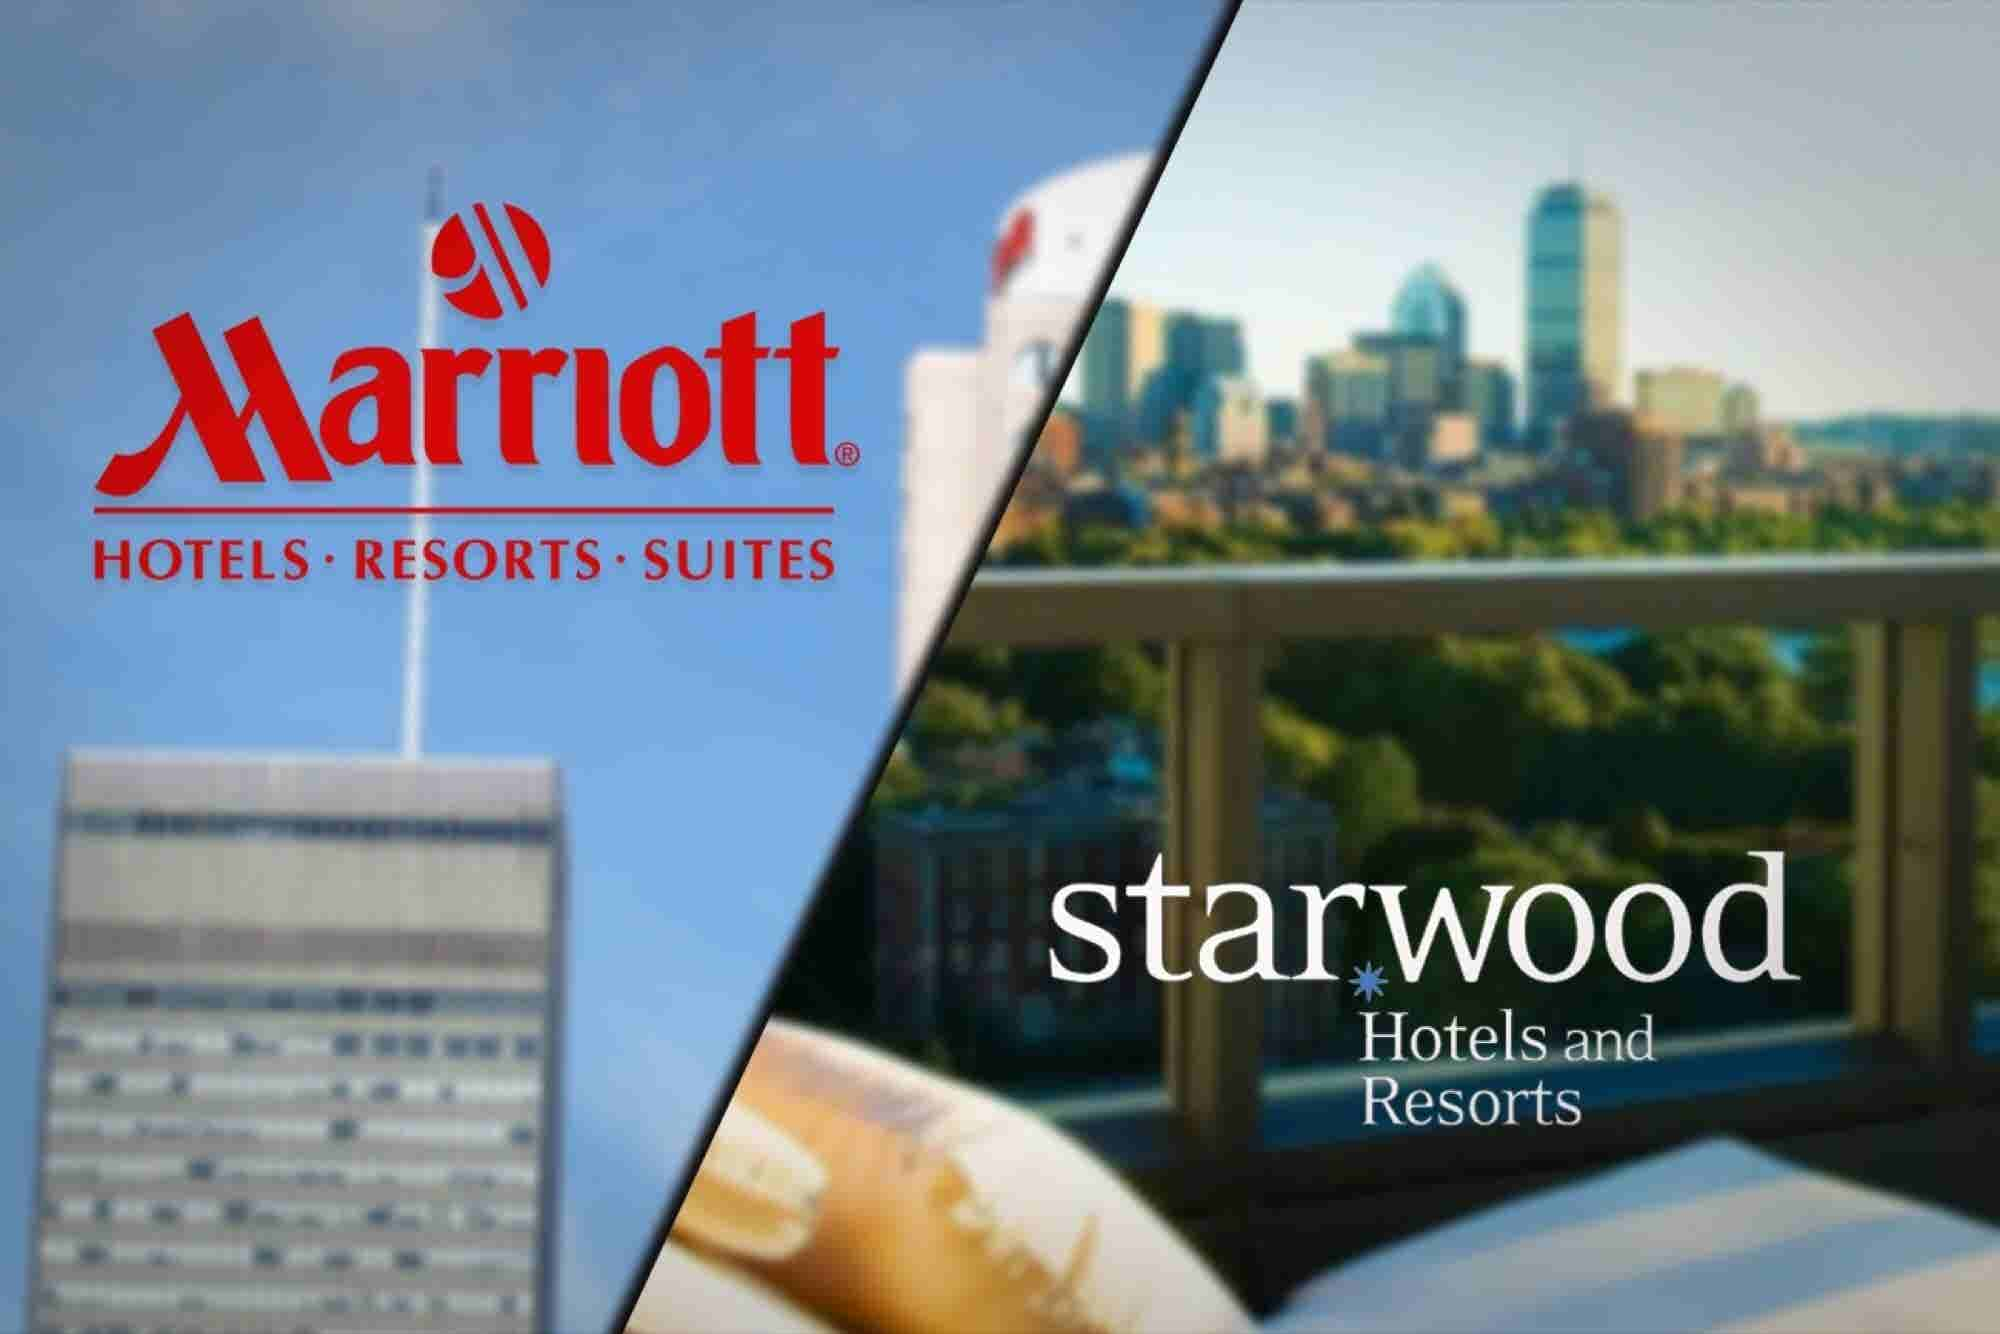 Sheraton-Owner Starwood Accepts Higher Takeover Offer From Marriott